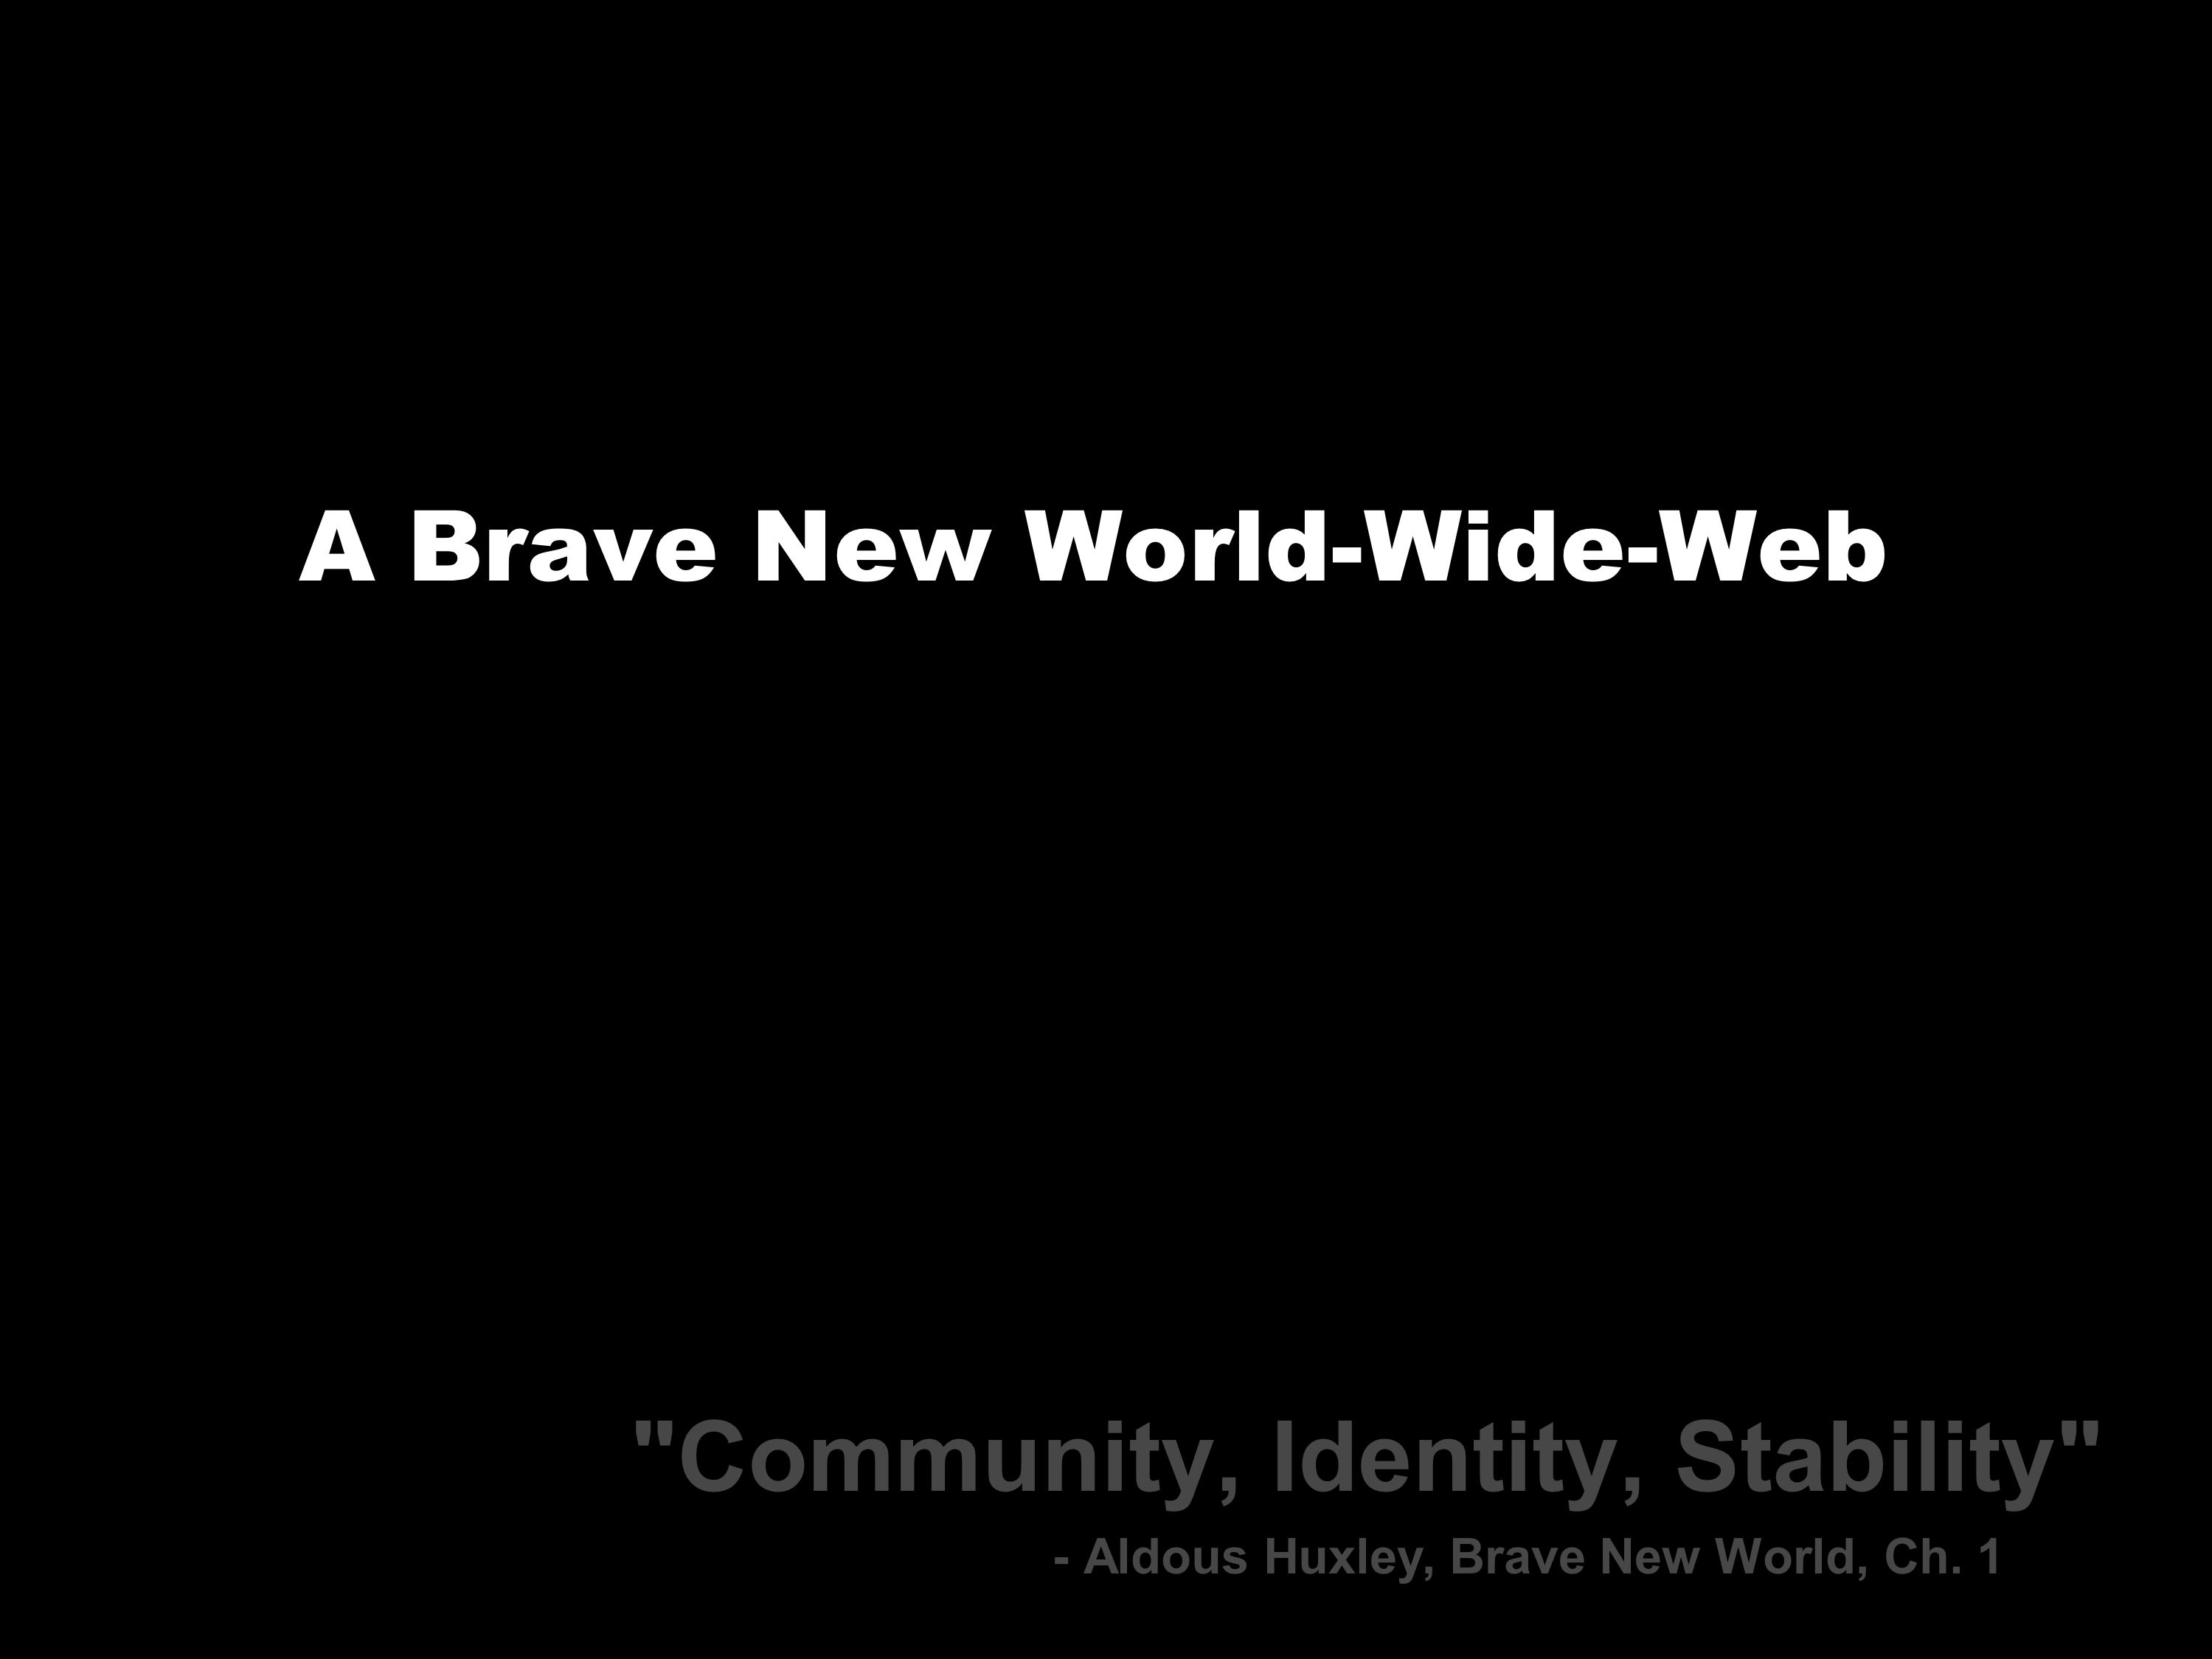 A Brave New World-Wide-Web